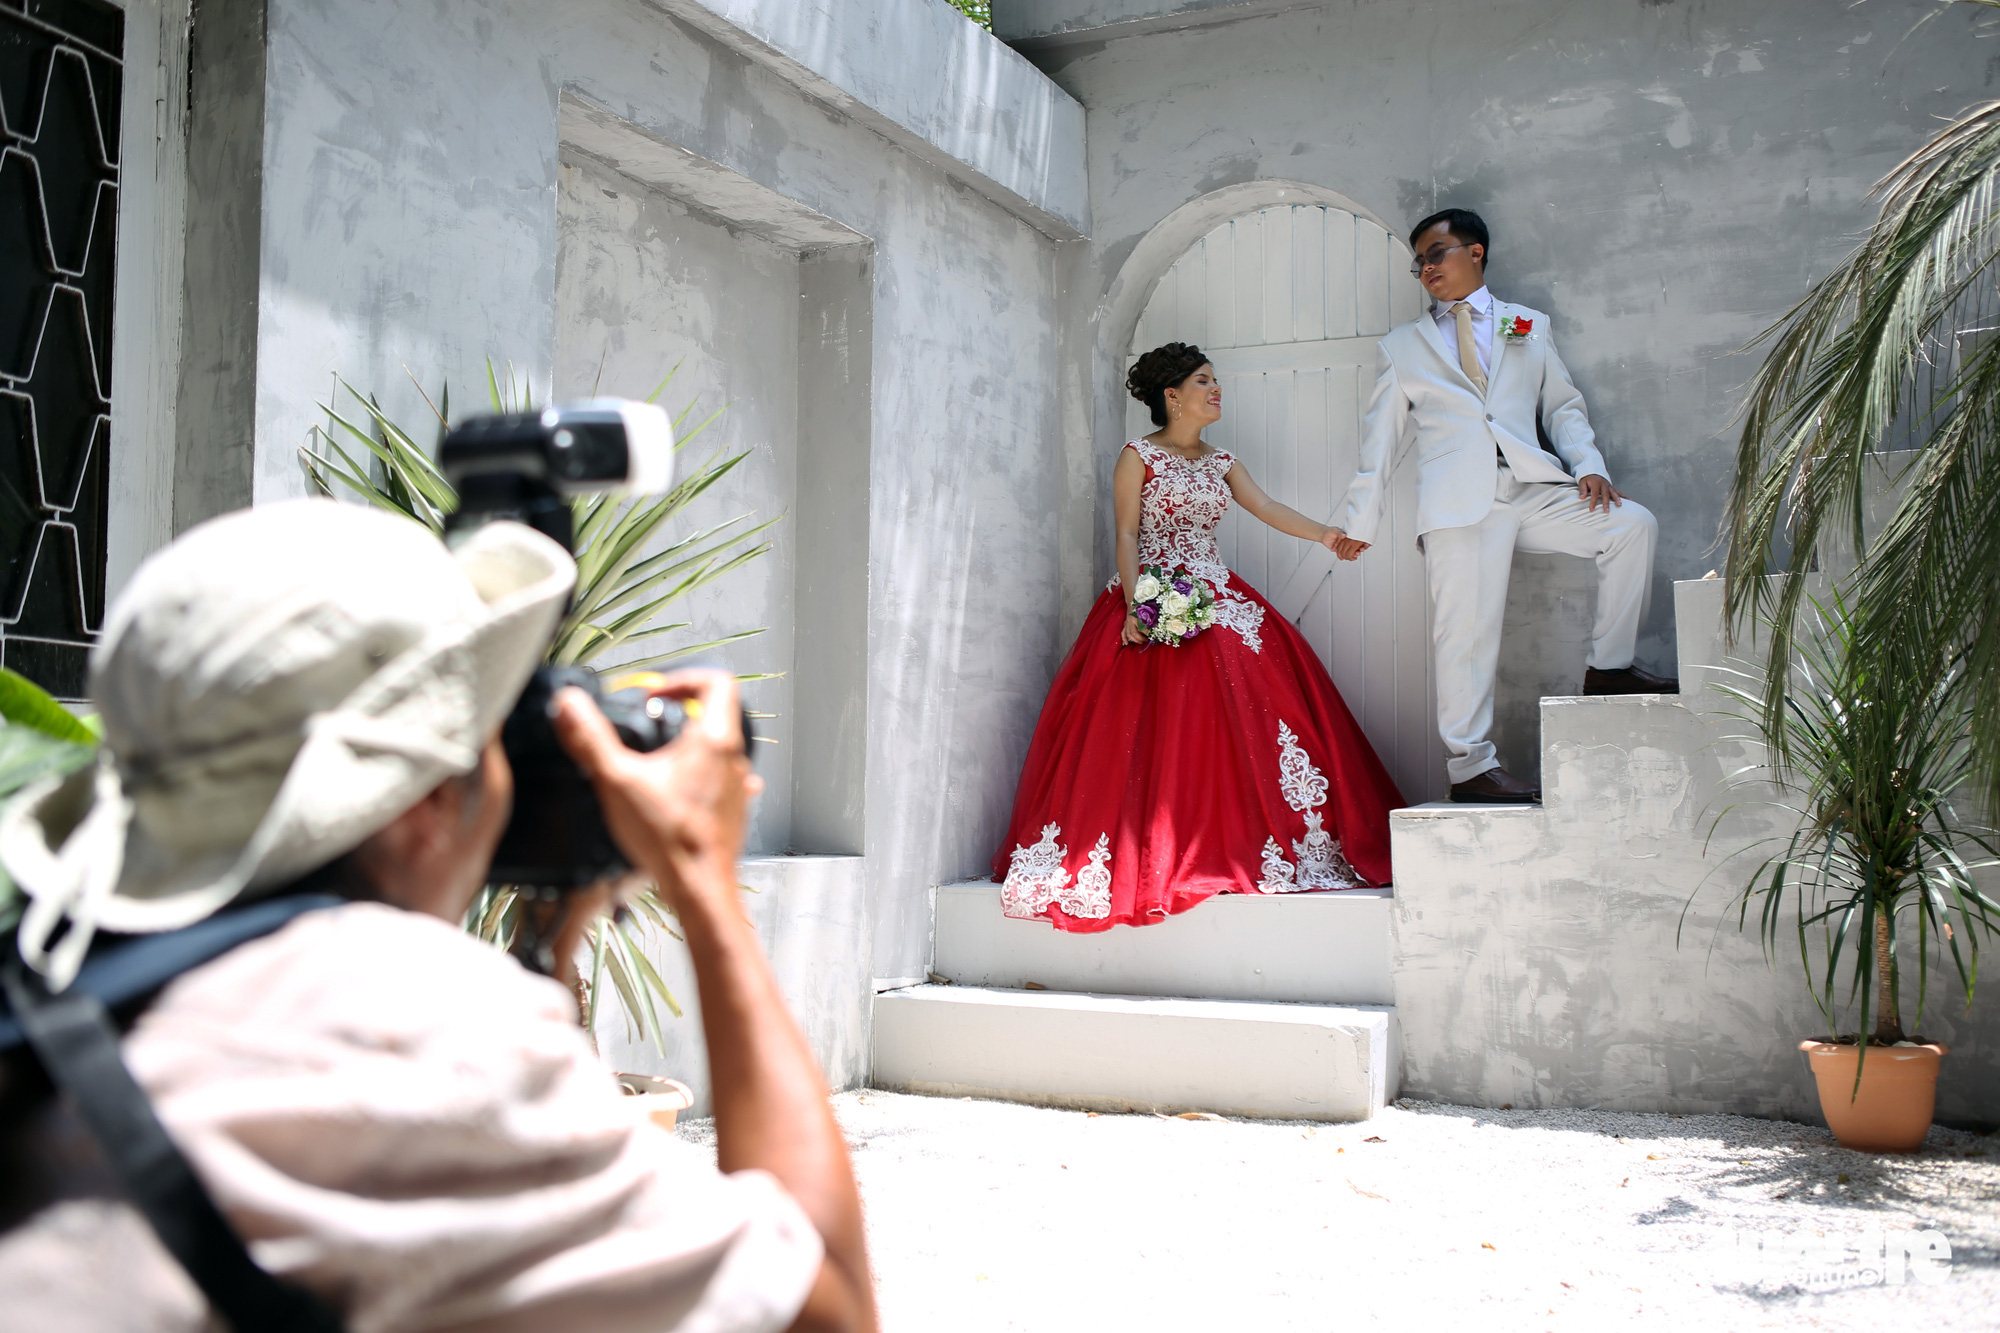 These Vietnamese photographers offer free pre-wedding photoshoots for disabled couples